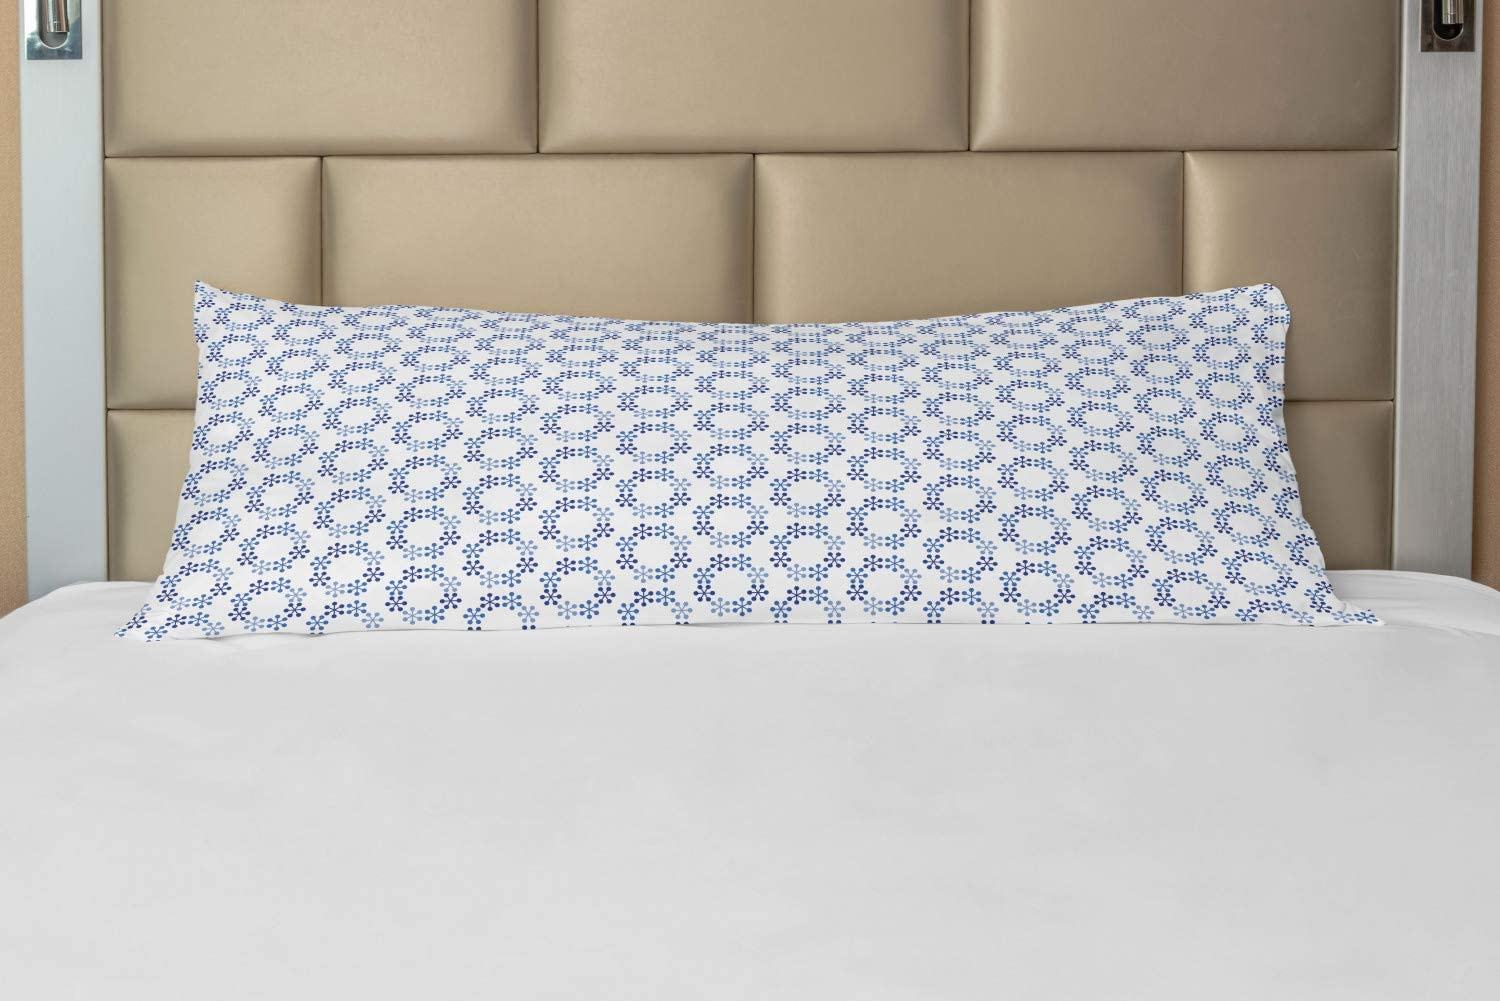 Lunarable Moroccan Body Pillow Case Cover with Zipper, Minimalist Approach of Hexagonal Modern Geometric Blue Tones, Decorative Accent Long Pillowcase, 21 x 54, Turquoise Dark Blue